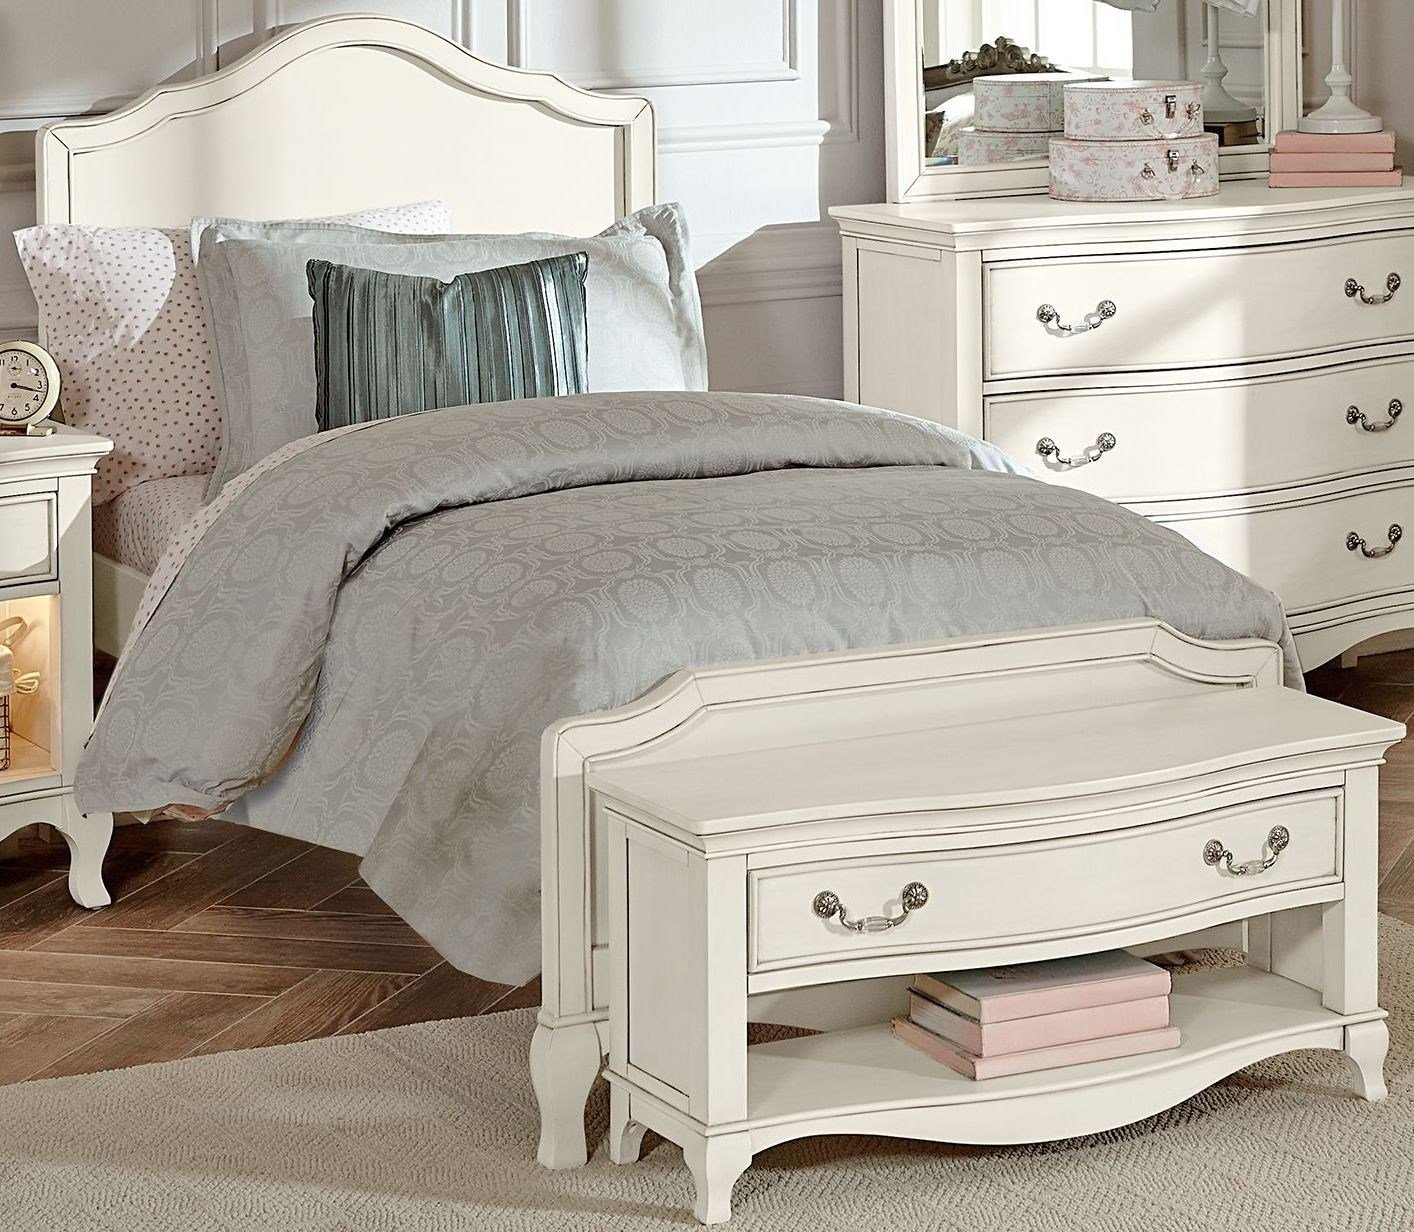 Best Kensington Antique White Charlotte Youth Panel Bedroom Set 20010N Ne Kids With Pictures